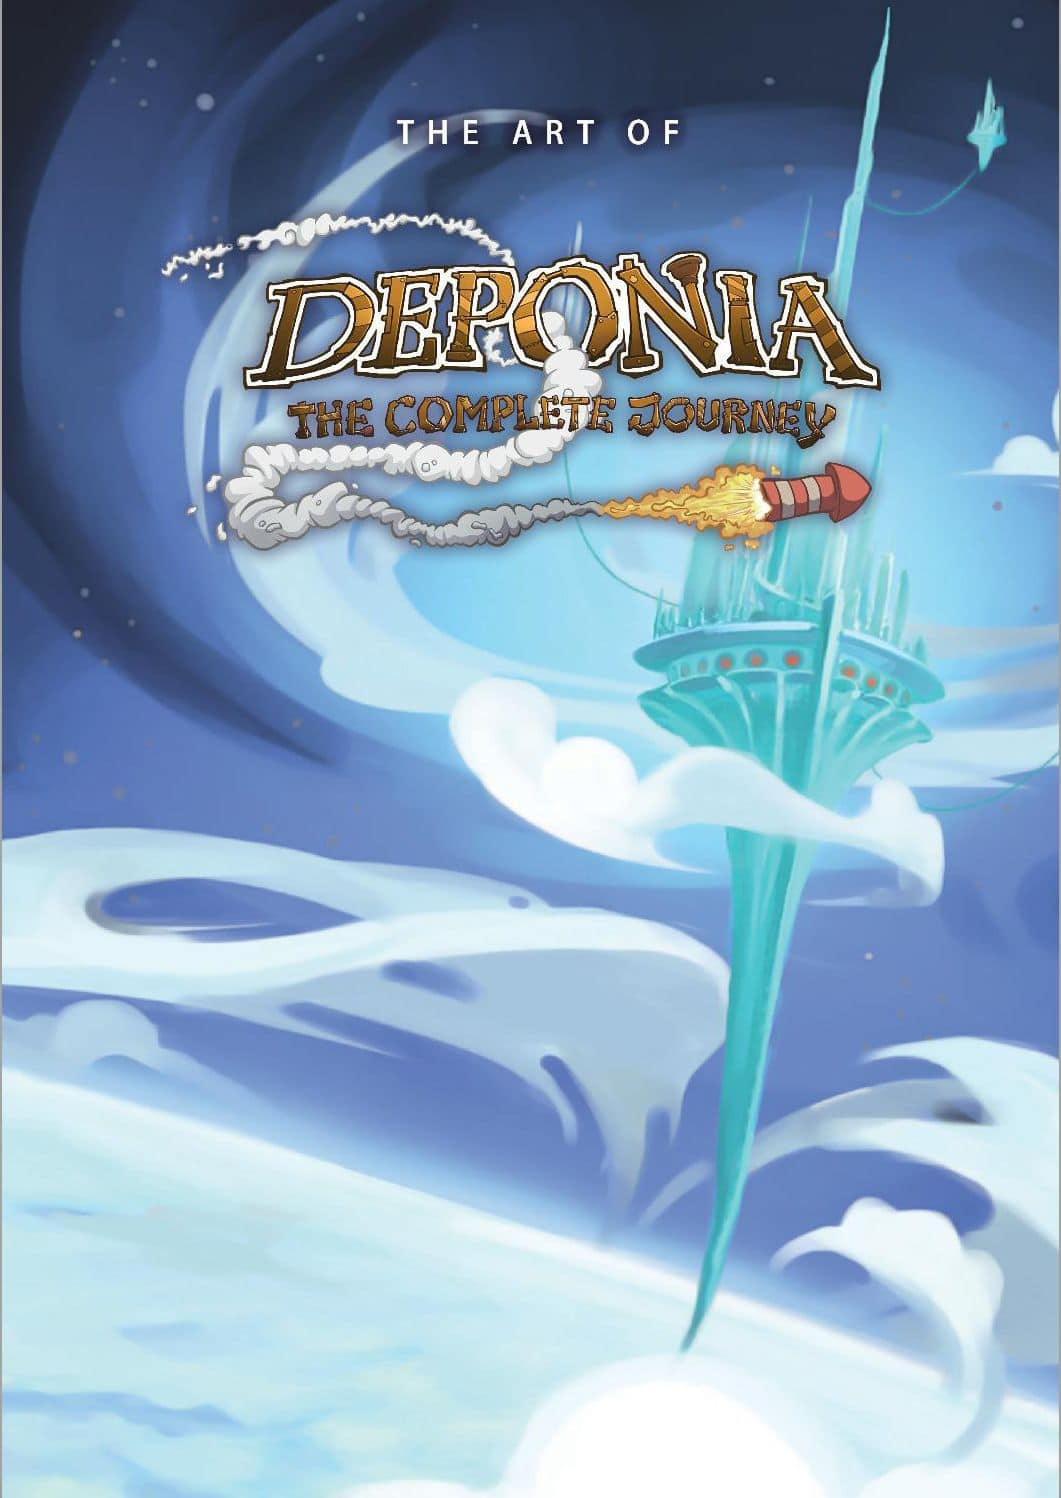 Die Kunst in Deponia (Foto: Daedalic Entertainment)